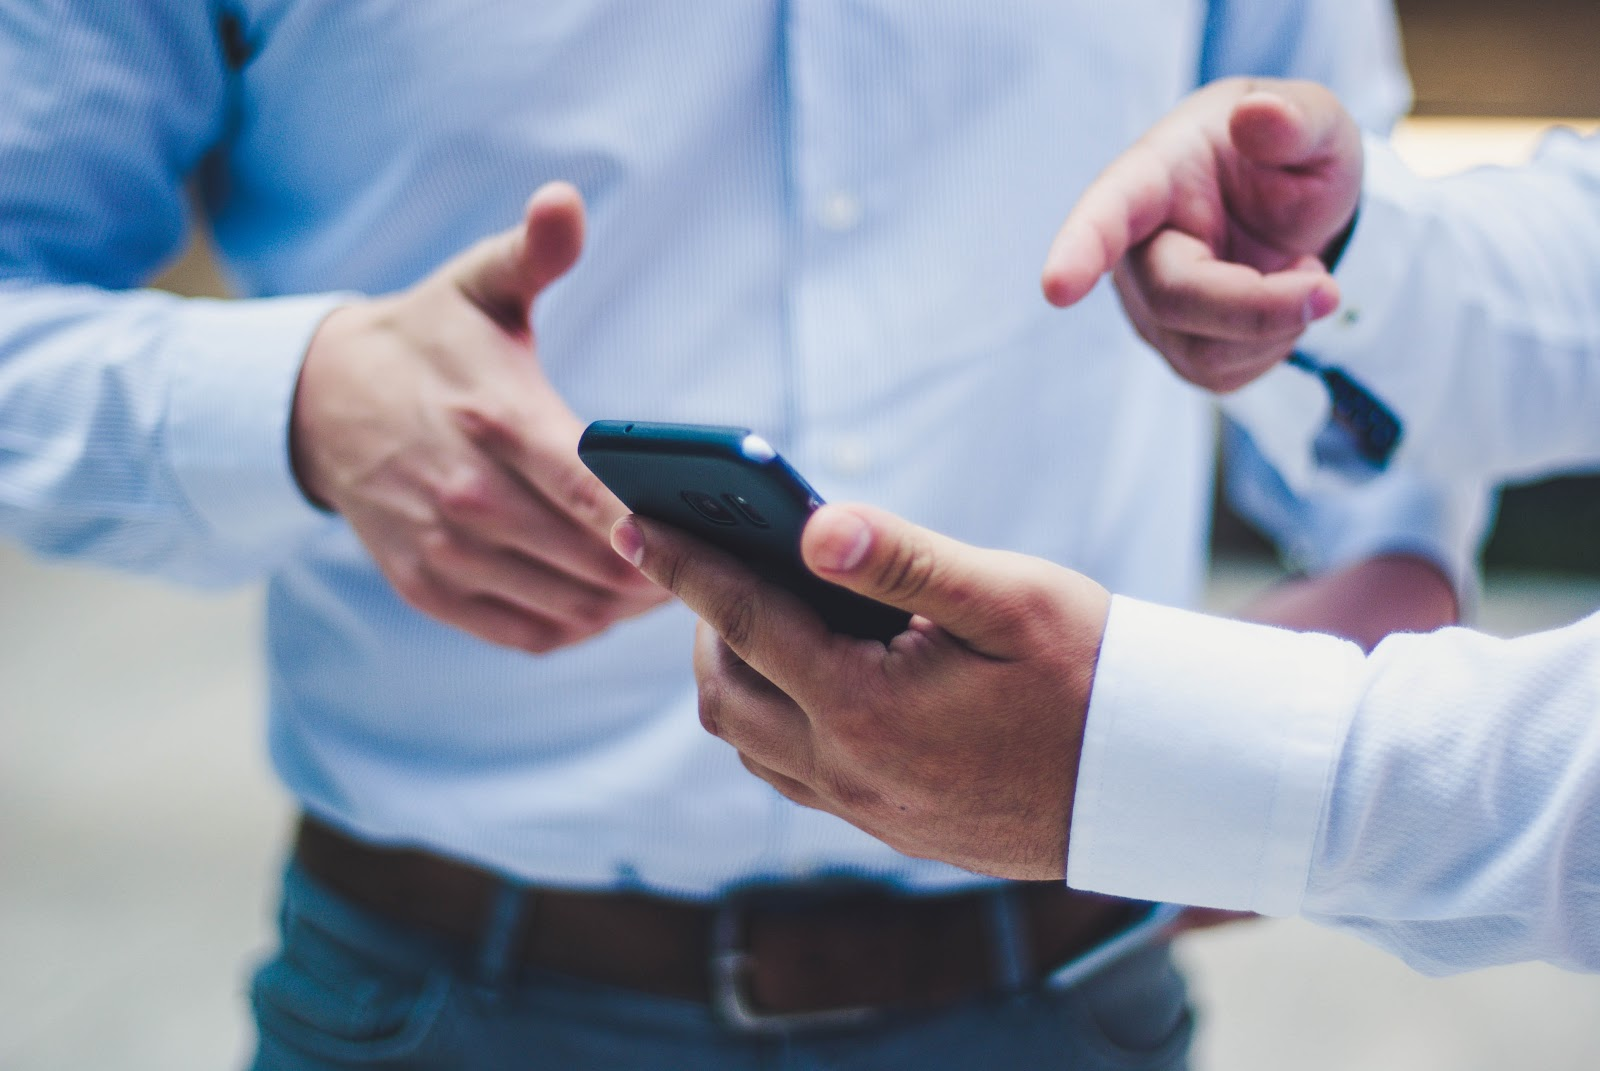 Two people looking at a smartphone